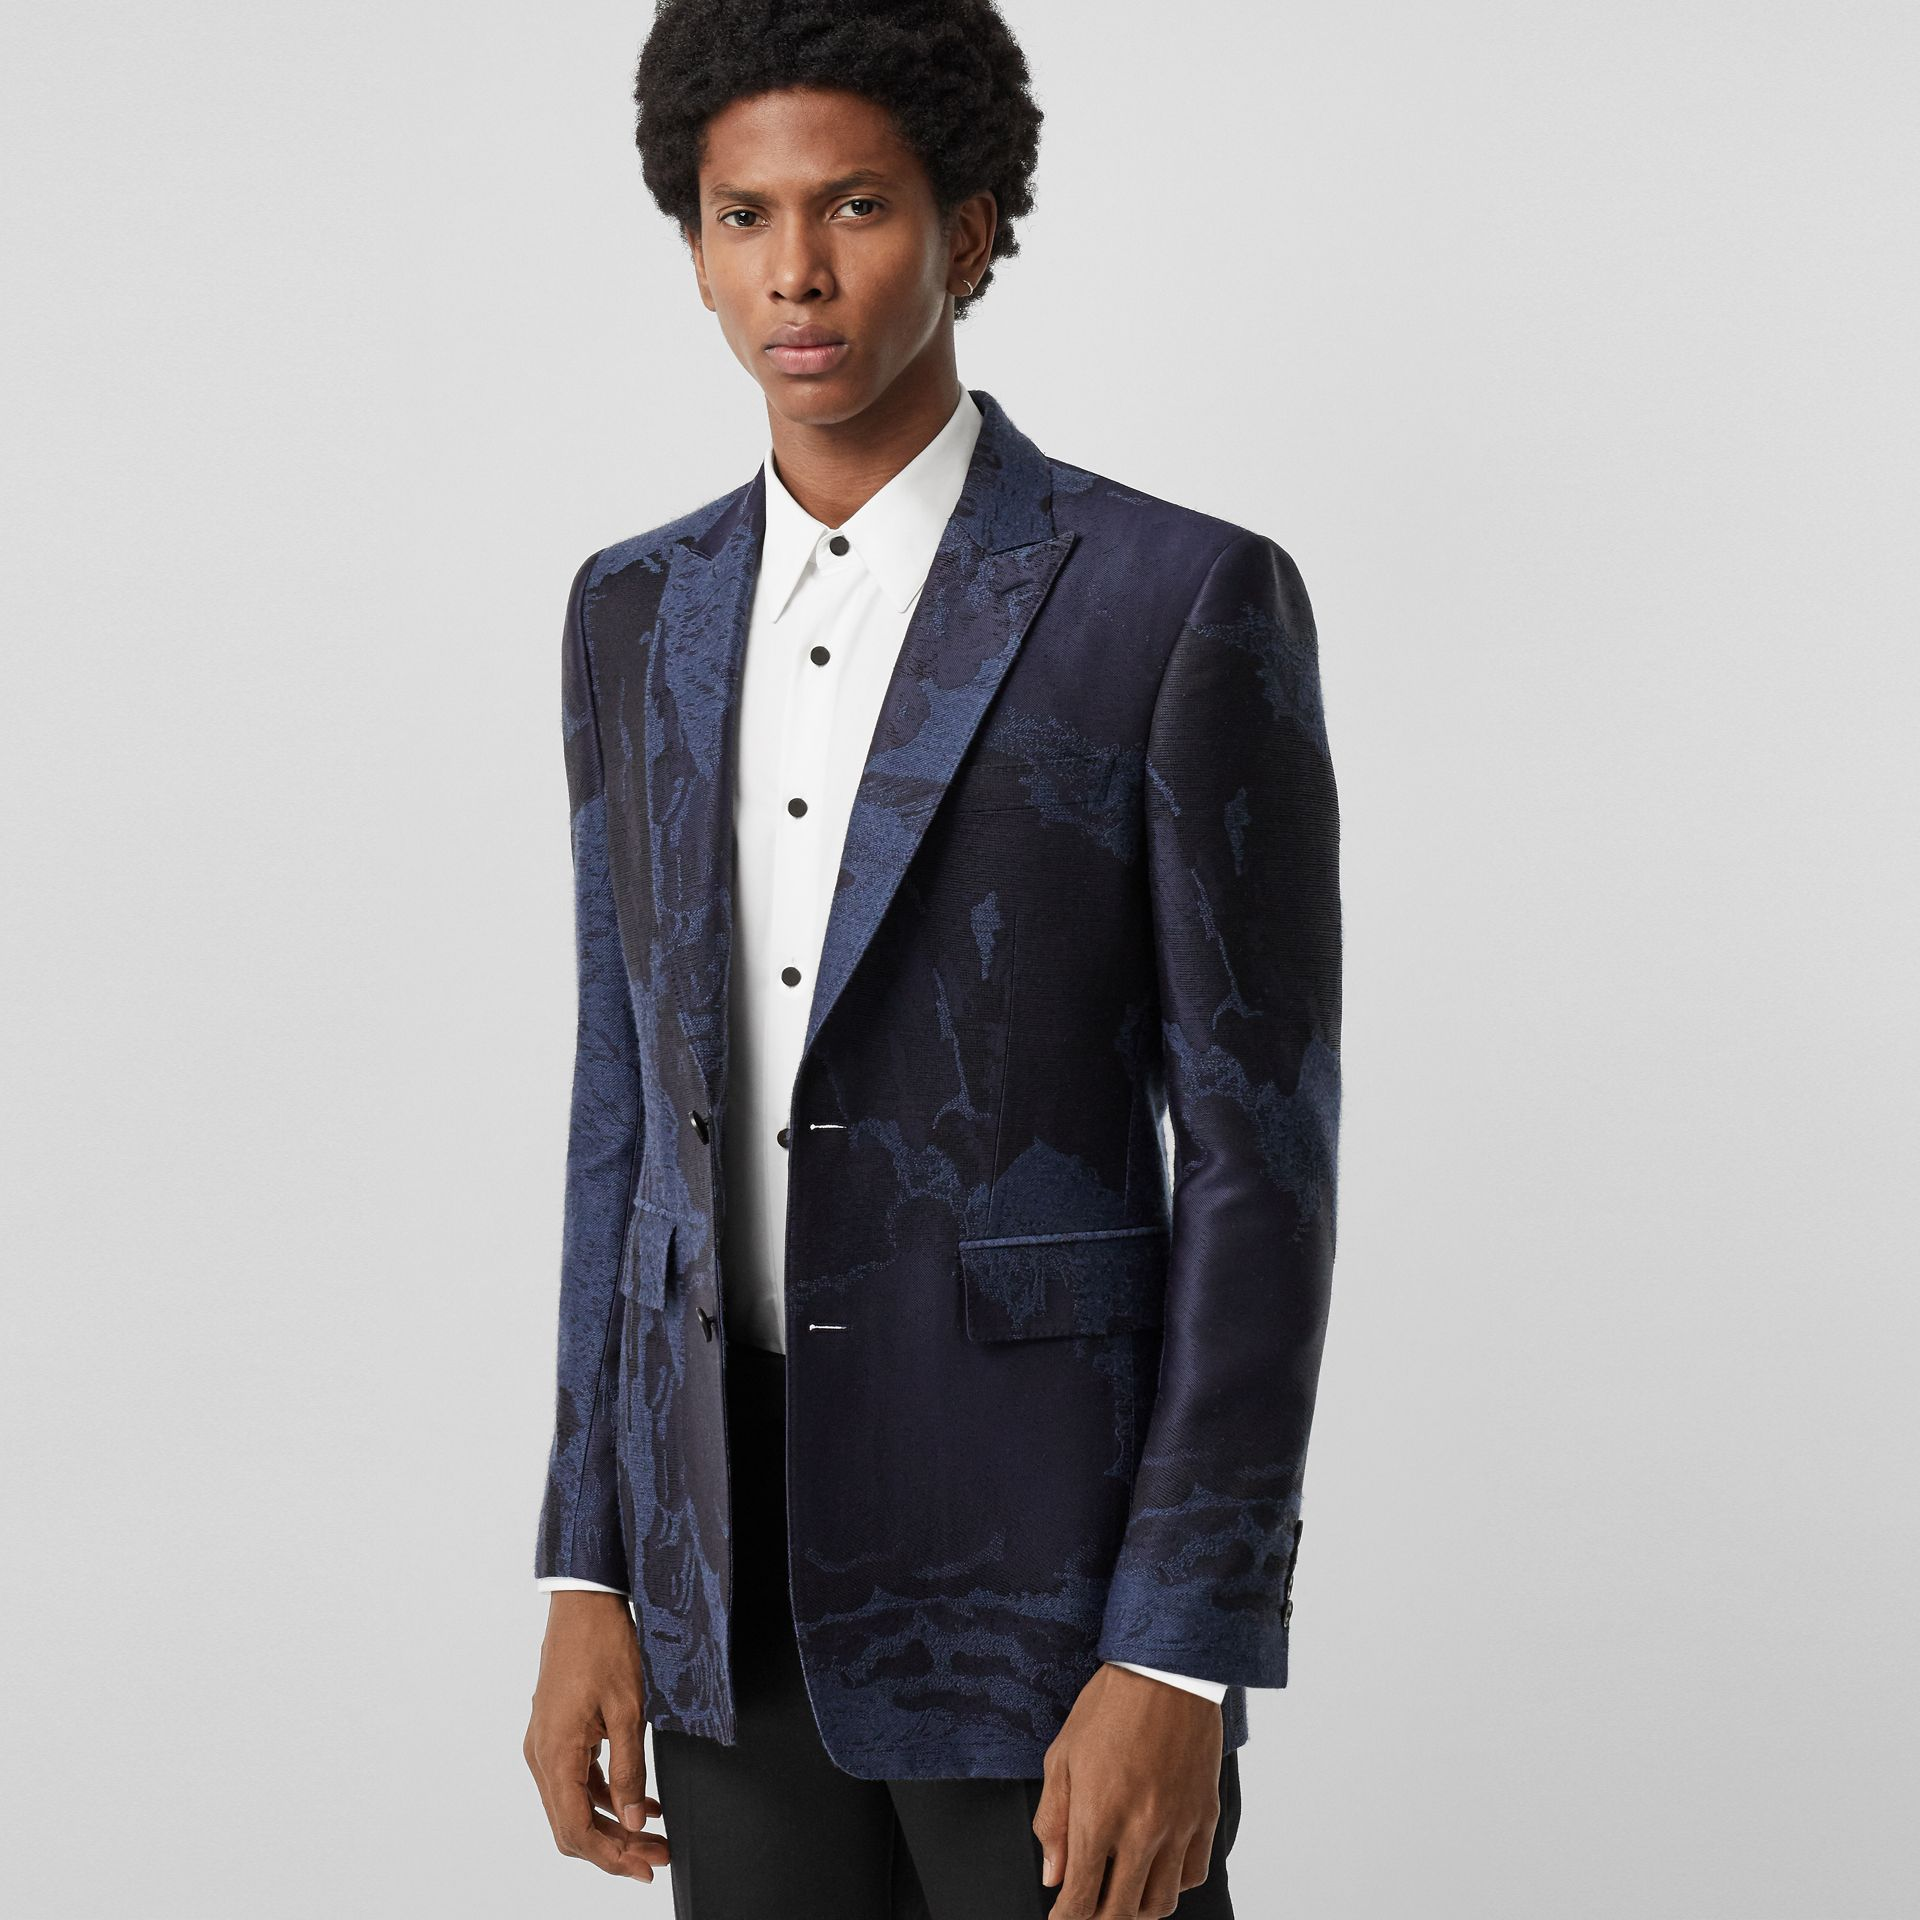 Classic Fit Dreamscape Wool Blend Tailored Jacket in Midnight Blue - Men | Burberry Singapore - gallery image 5